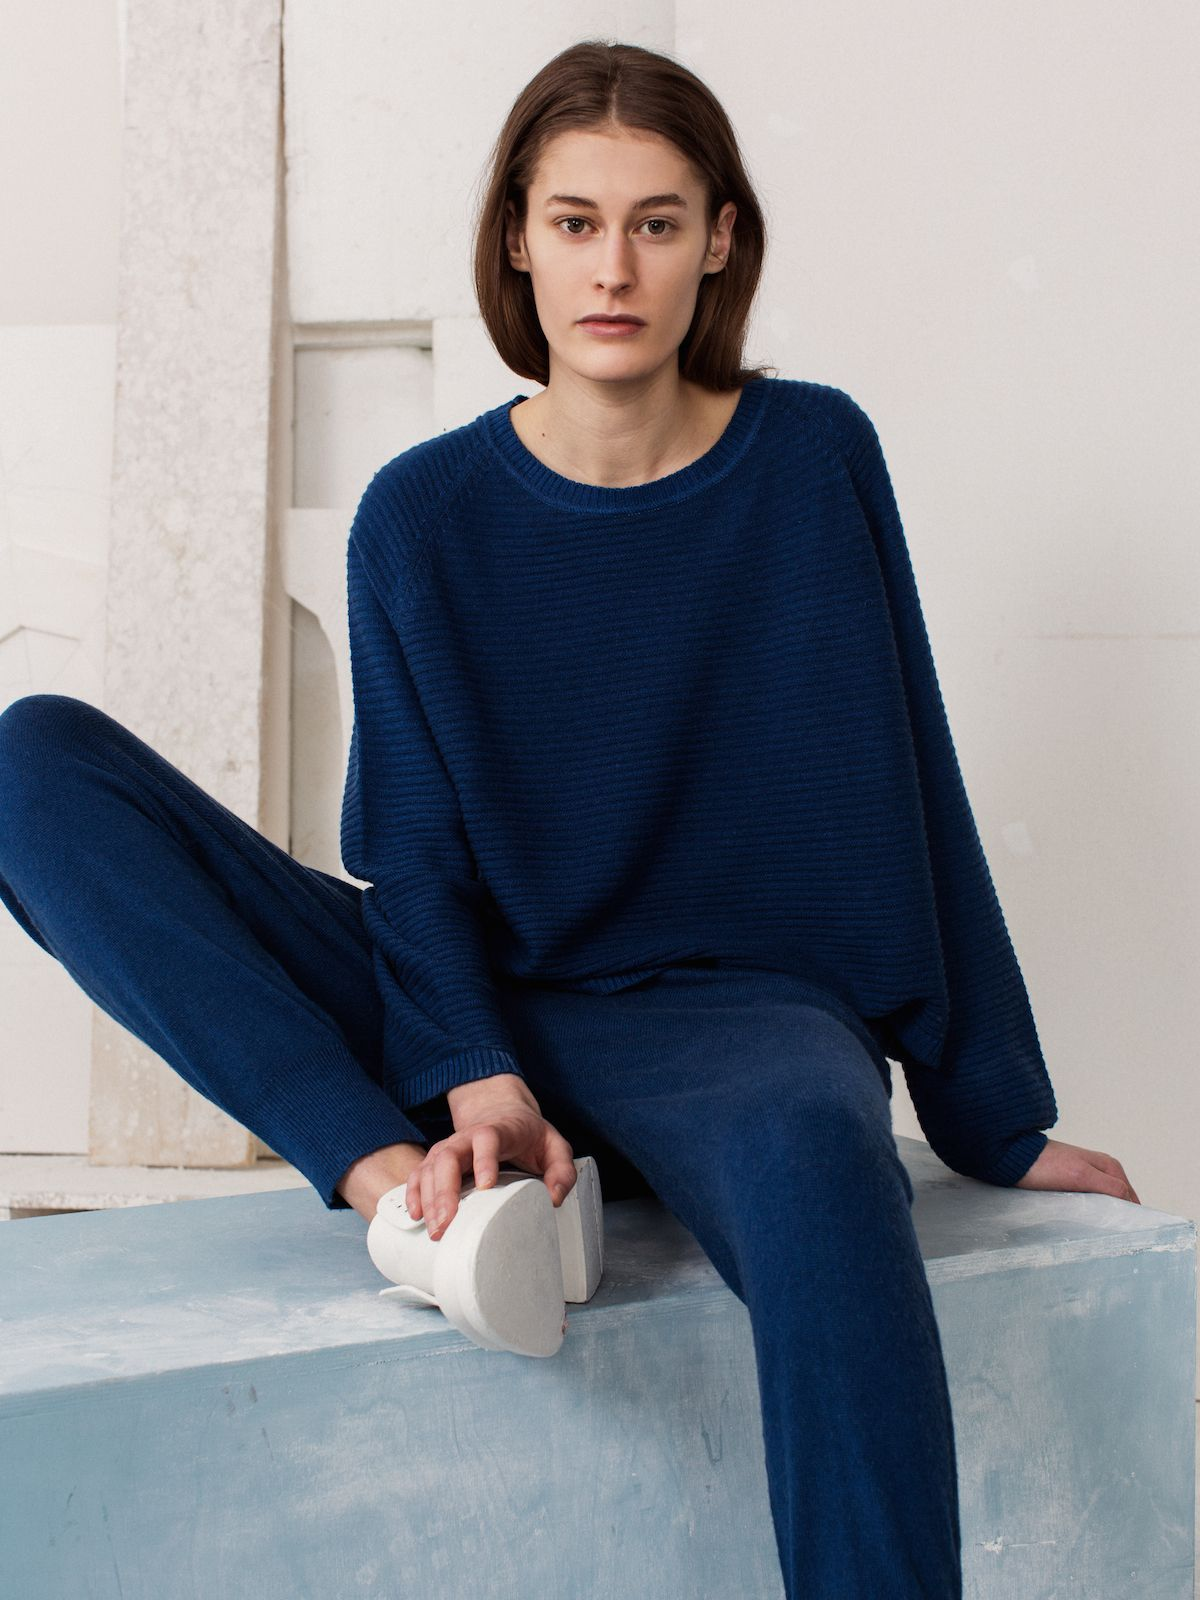 "Arela A/W 15 Collection ""Lunar Mare"".    Noelle sweater and Kaoru sweatpants in cashmere.   Photography Osma Harvilahti, art direction Linda Bergroth, model Caroline Farneman."